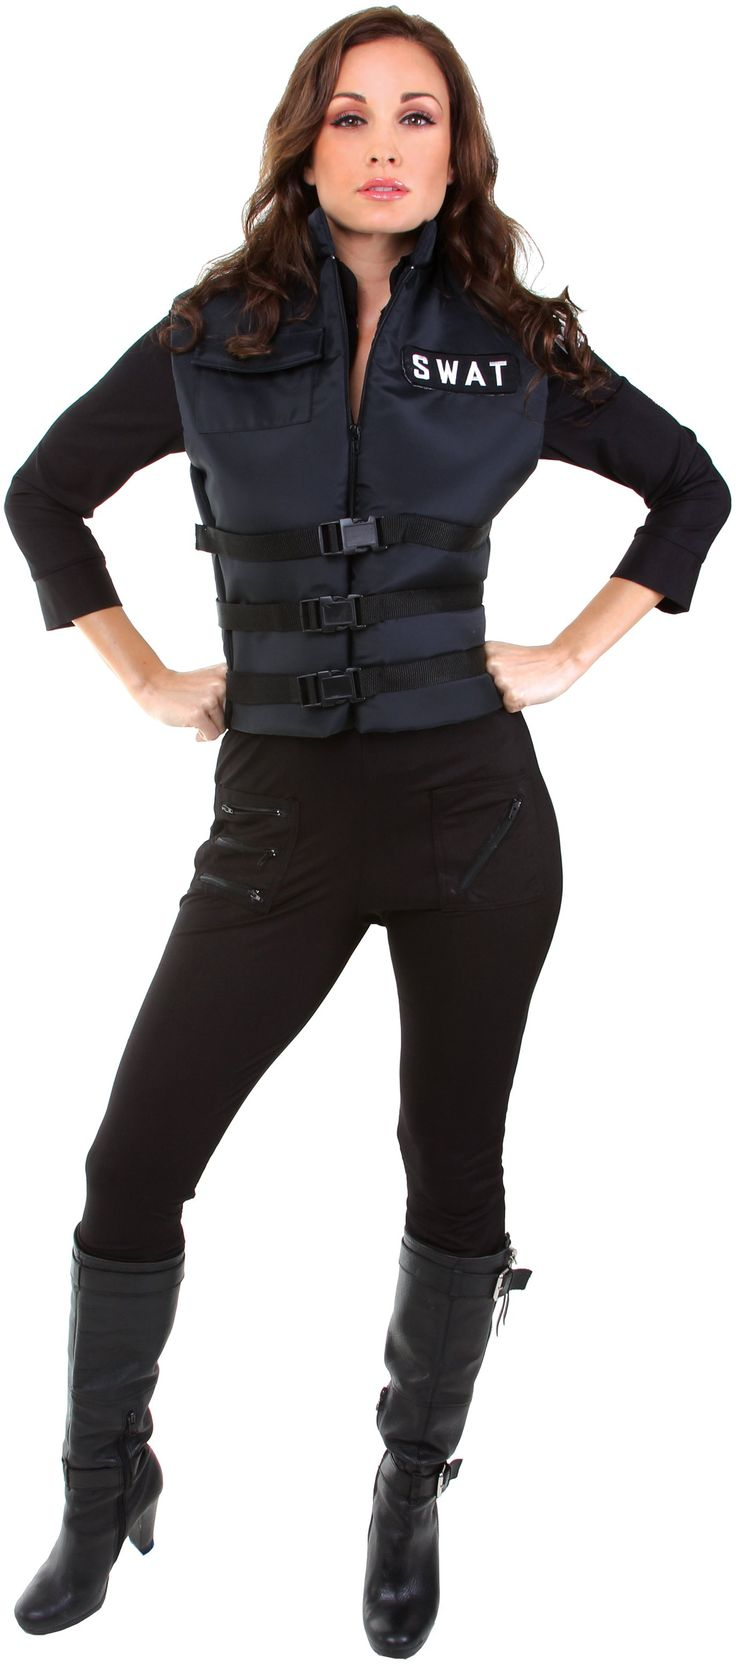 this listing is for lady swat adult costume costume includes black jumpsuit and vest does not include shoes - Girls Cop Halloween Costume